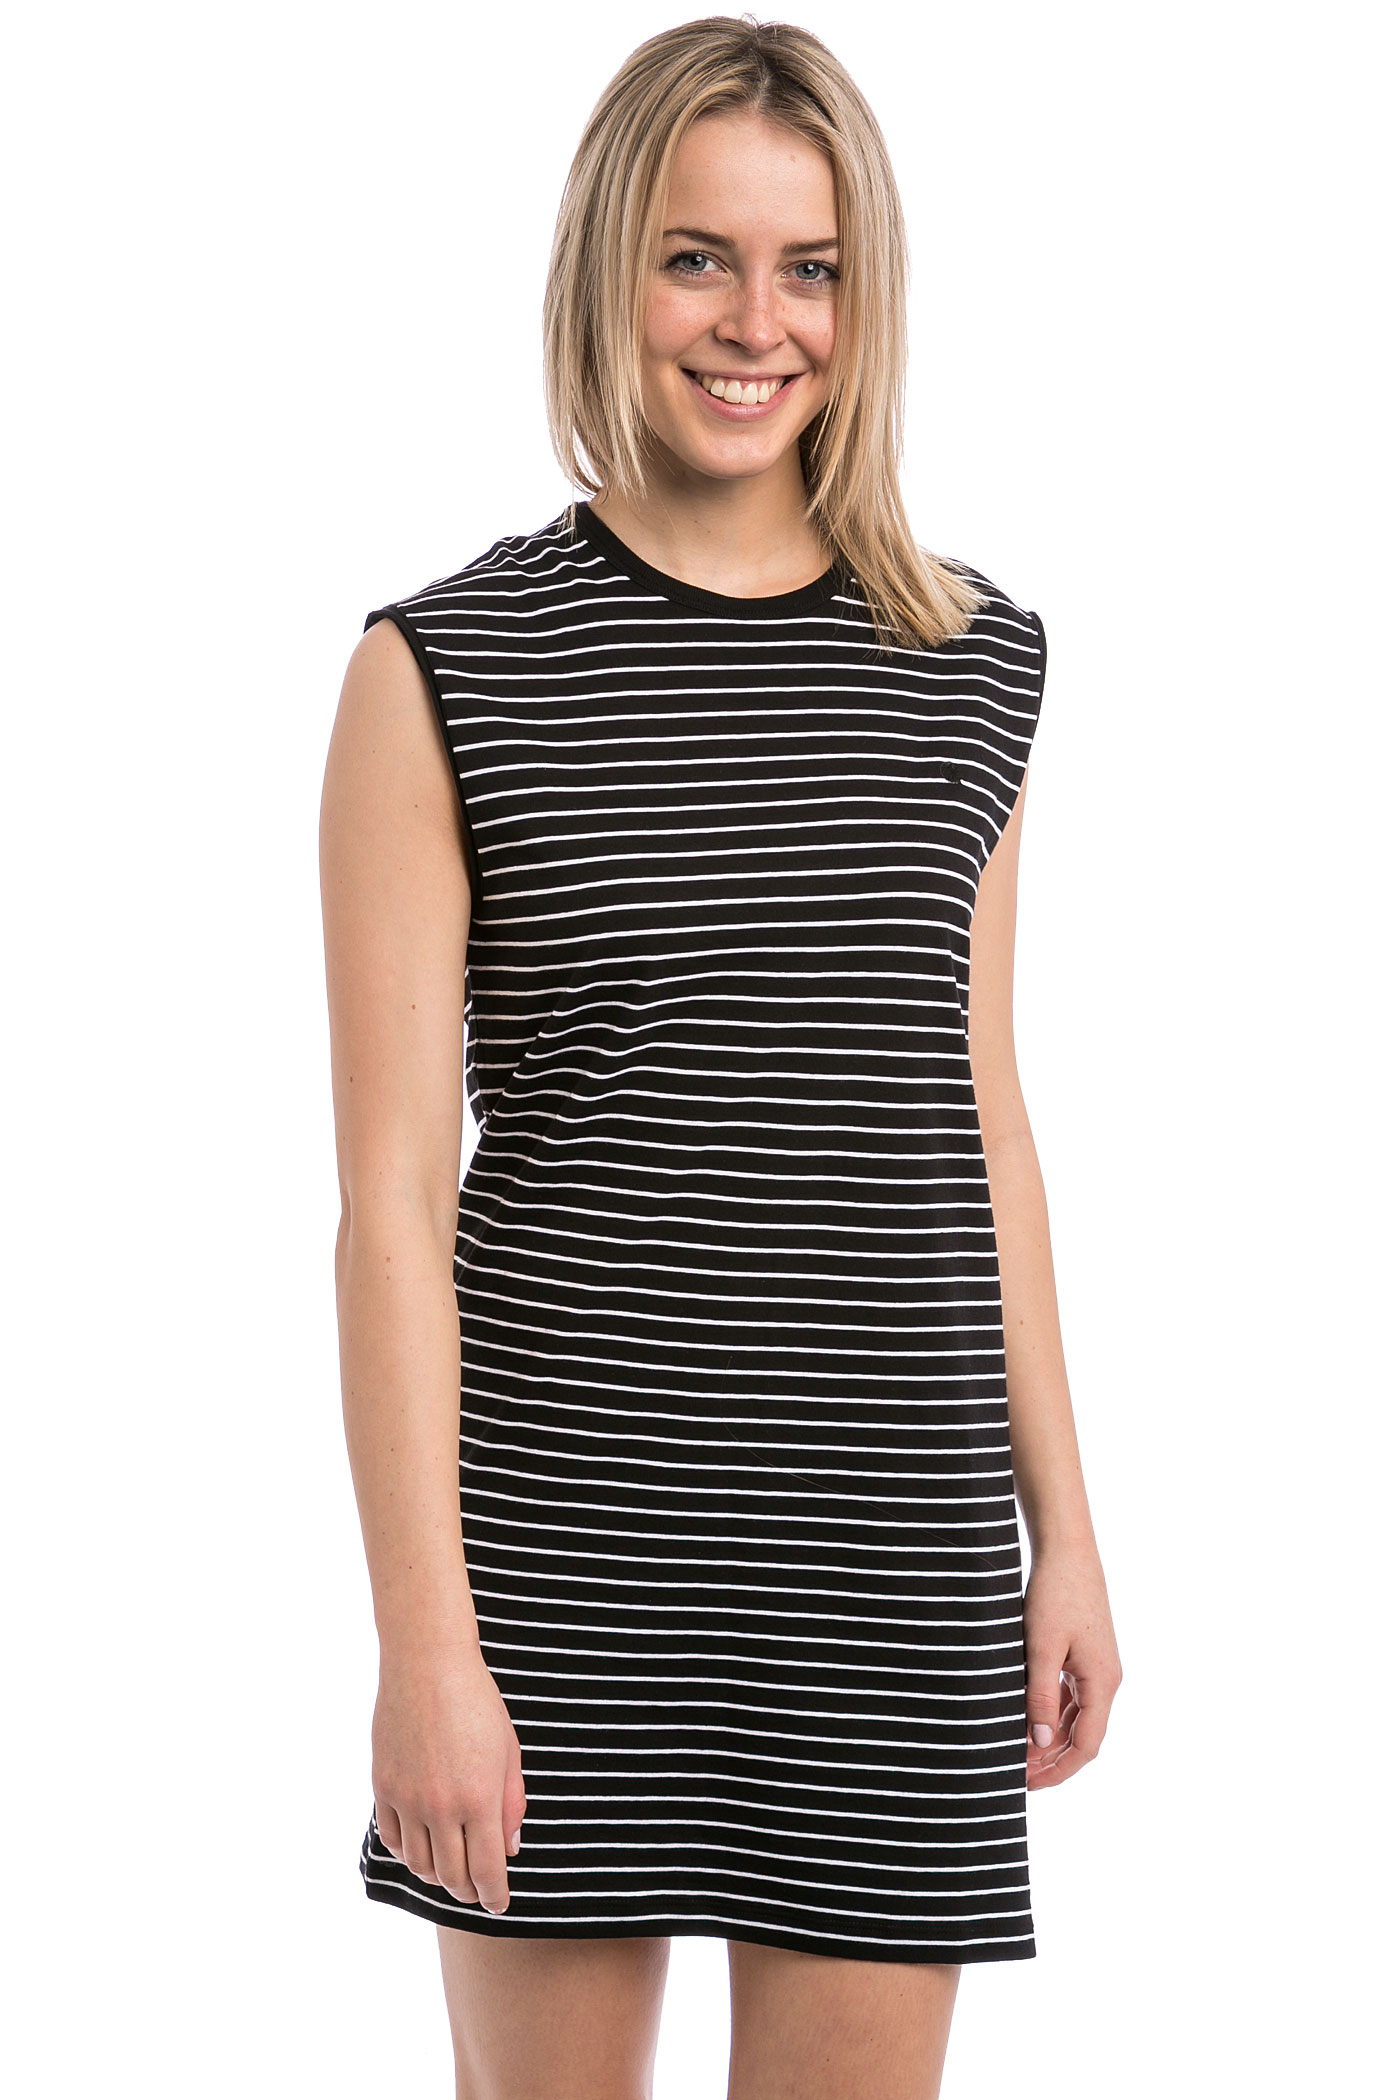 cullen black single women Cullen women's clothing at up to 90% of retail price discover over 25,000 brands of hugely discounted clothes, handbags, shoes and accessories at thredup.